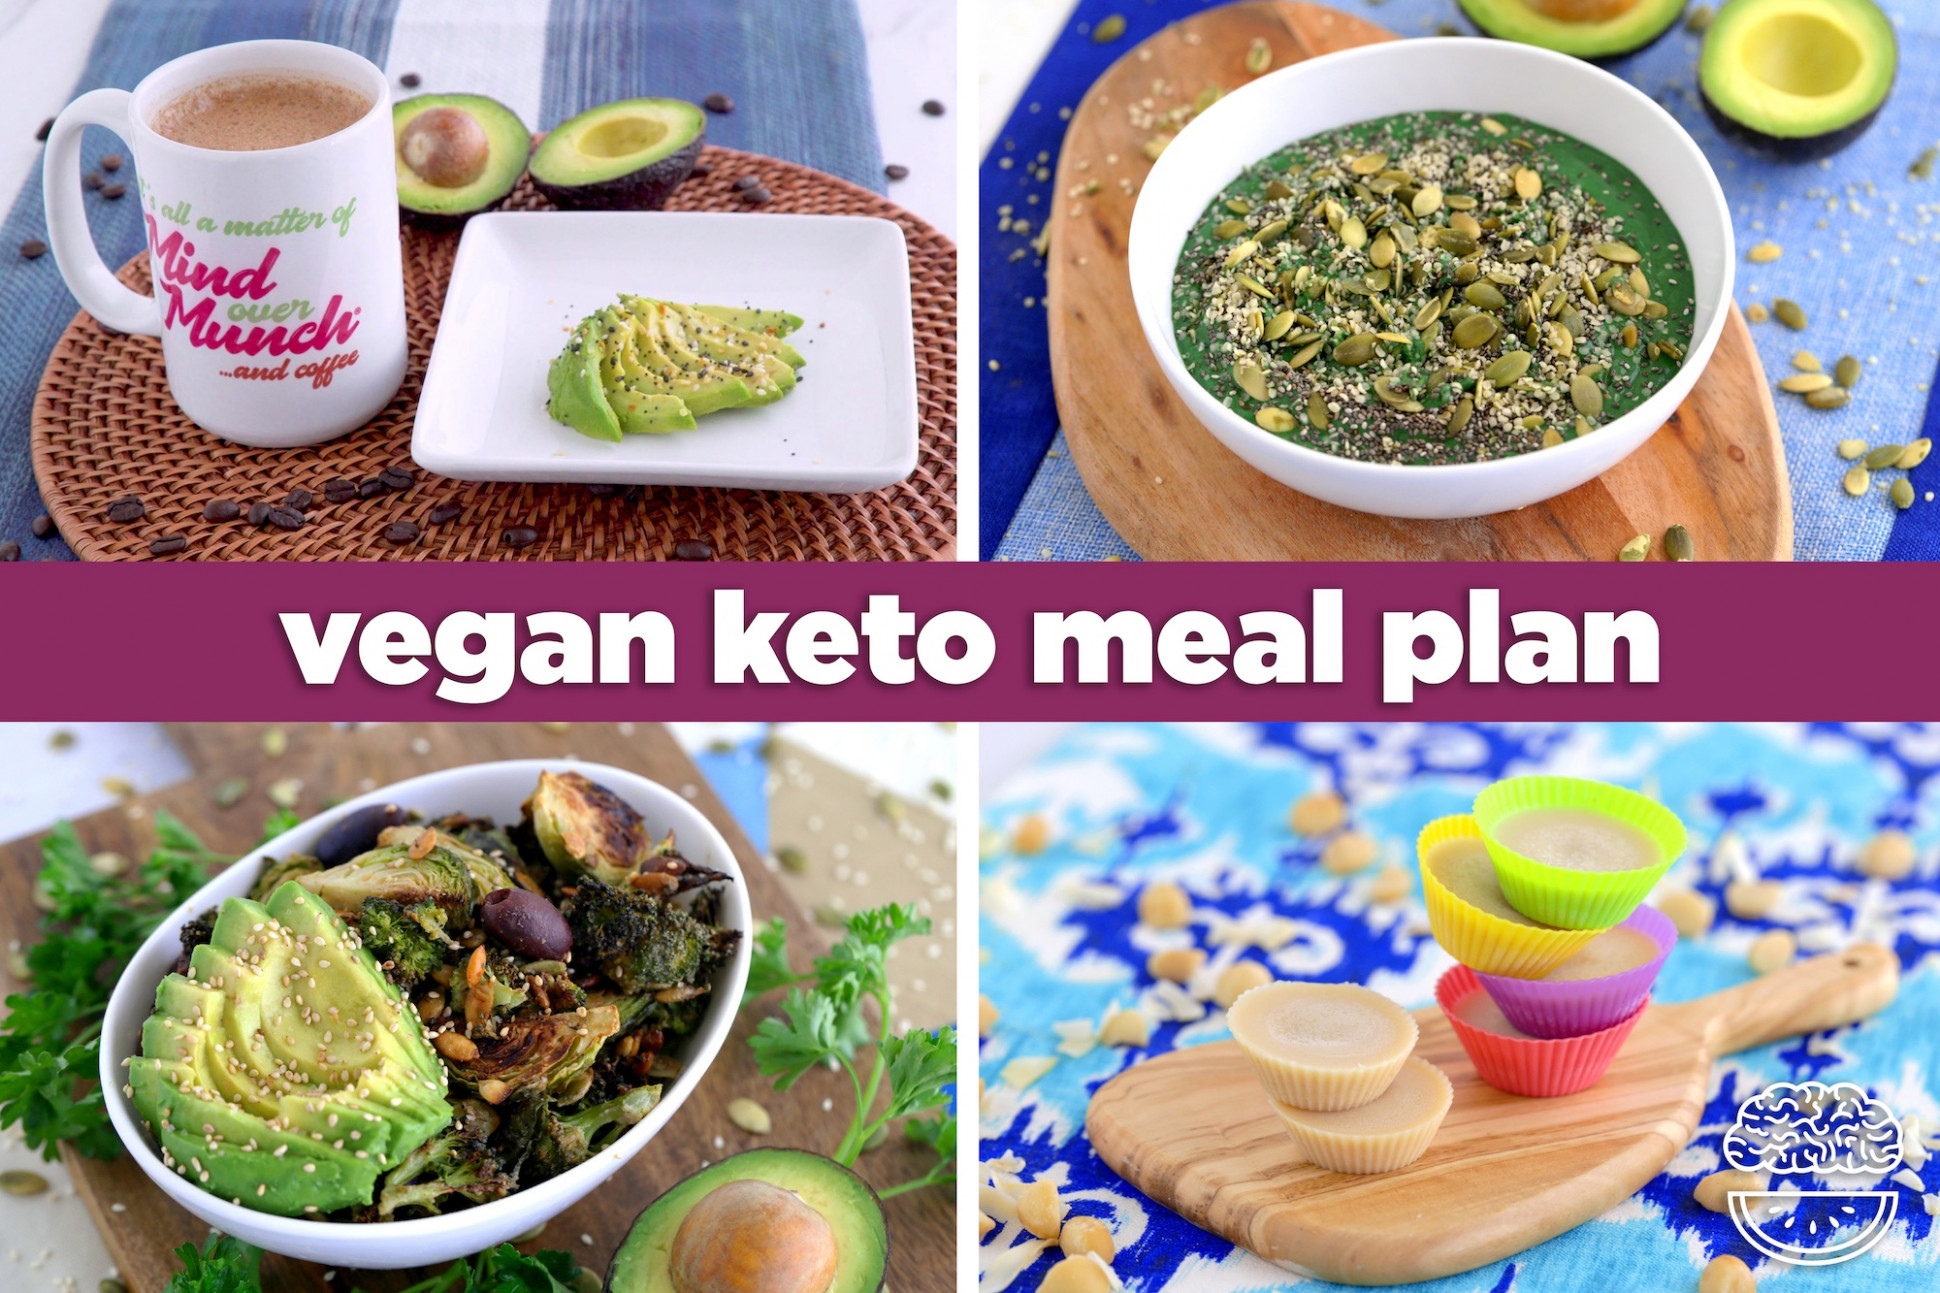 Soy Free Vegan Keto Meal Plan for the Day: 13 Meals + Dessert ..